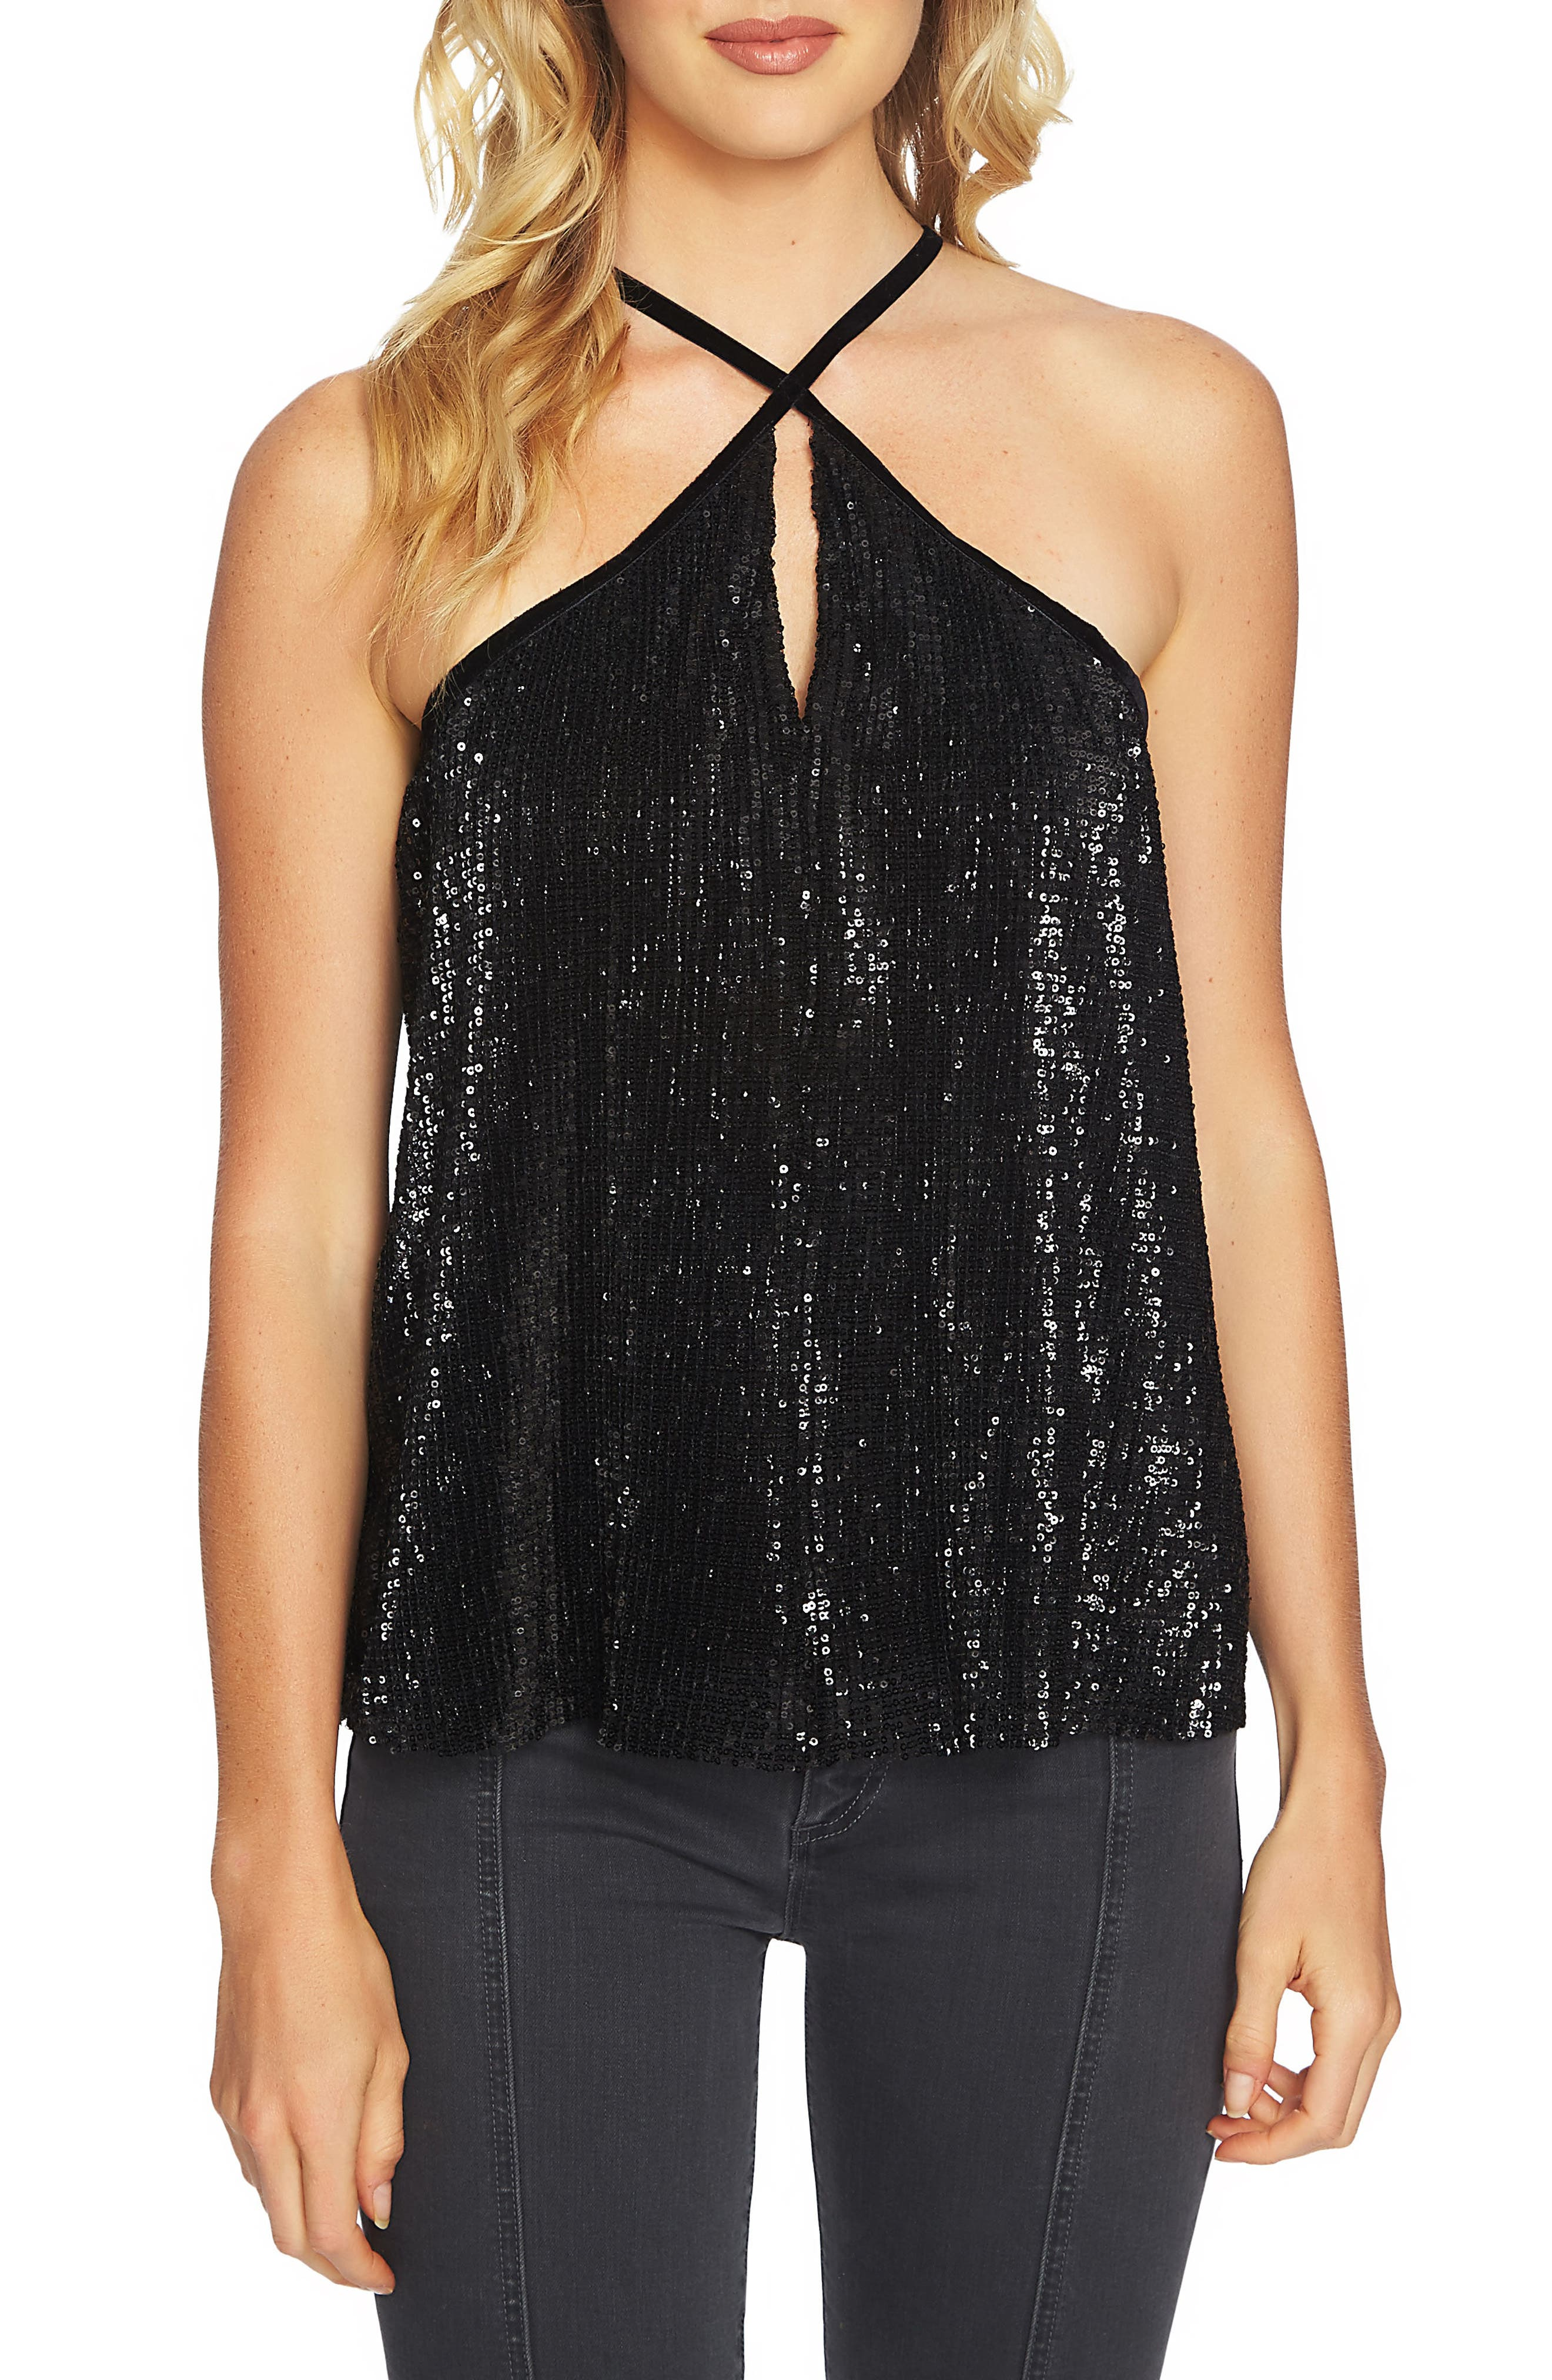 Main Image - 1.STATE Sequin Halter Camisole